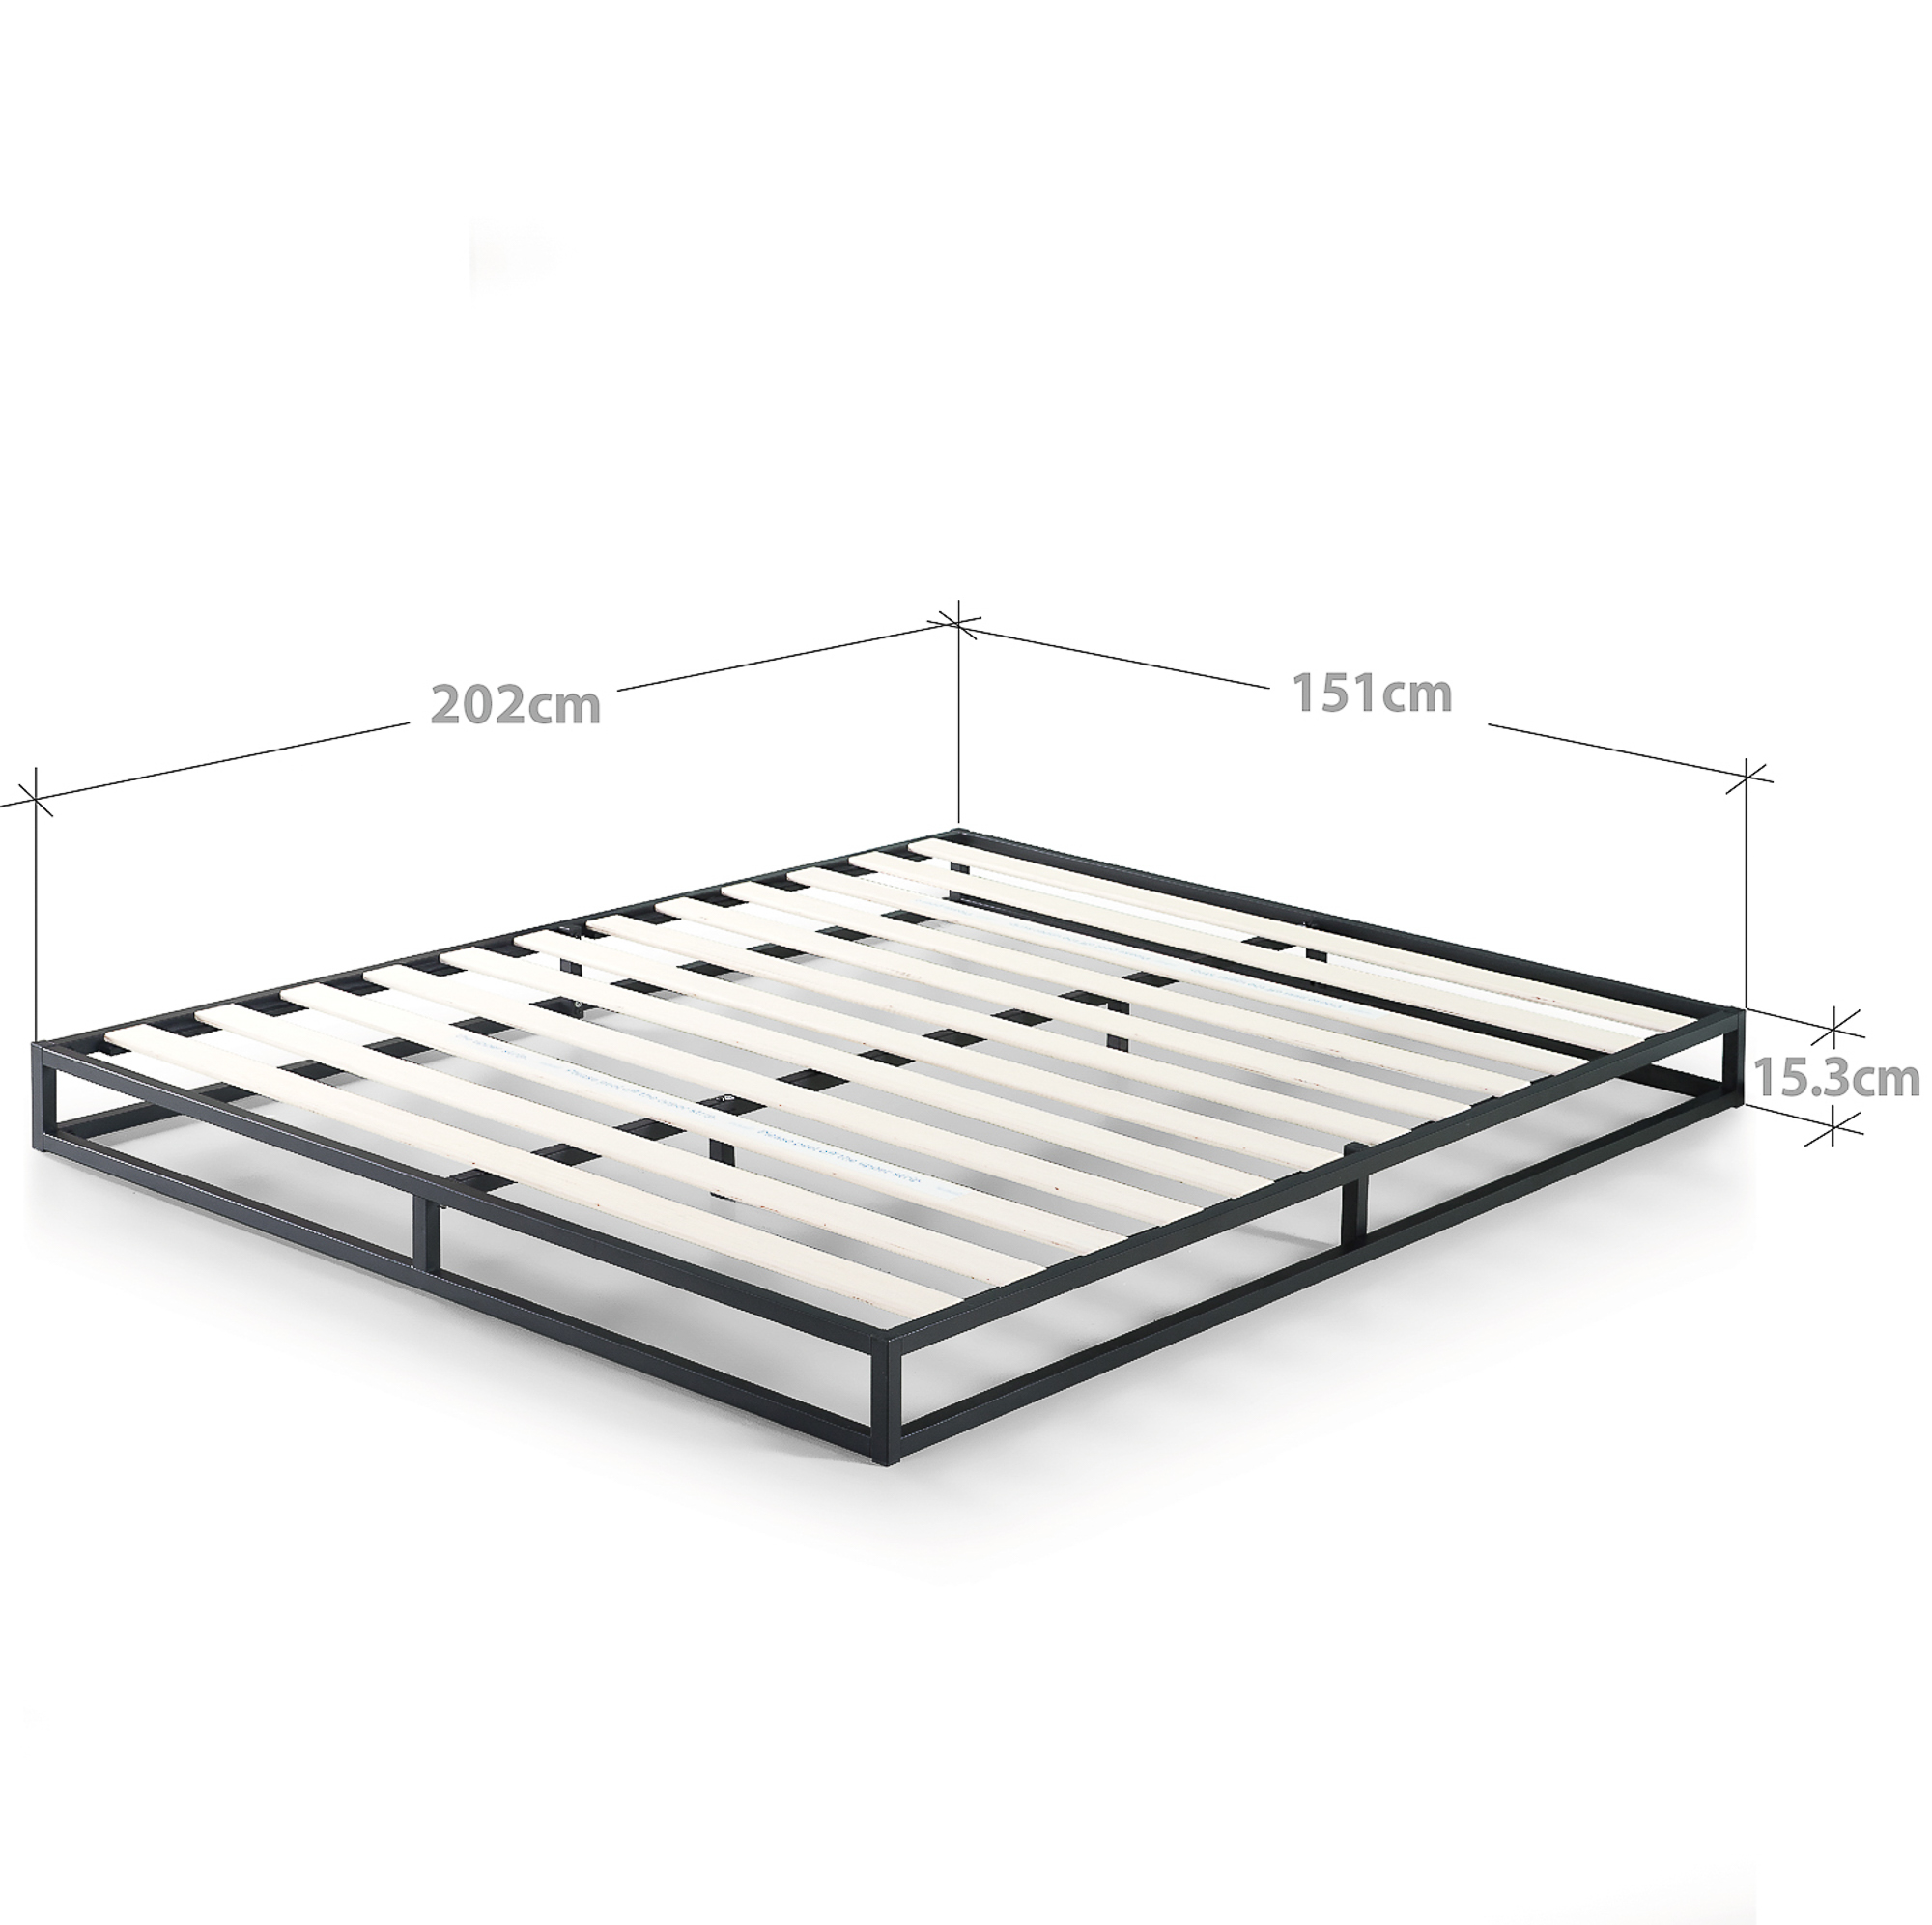 Zinus-Joesph-SINGLE-DOUBLE-QUEEN-KING-Metal-Low-Bed-Base-Mattress-Frame-Timber thumbnail 27